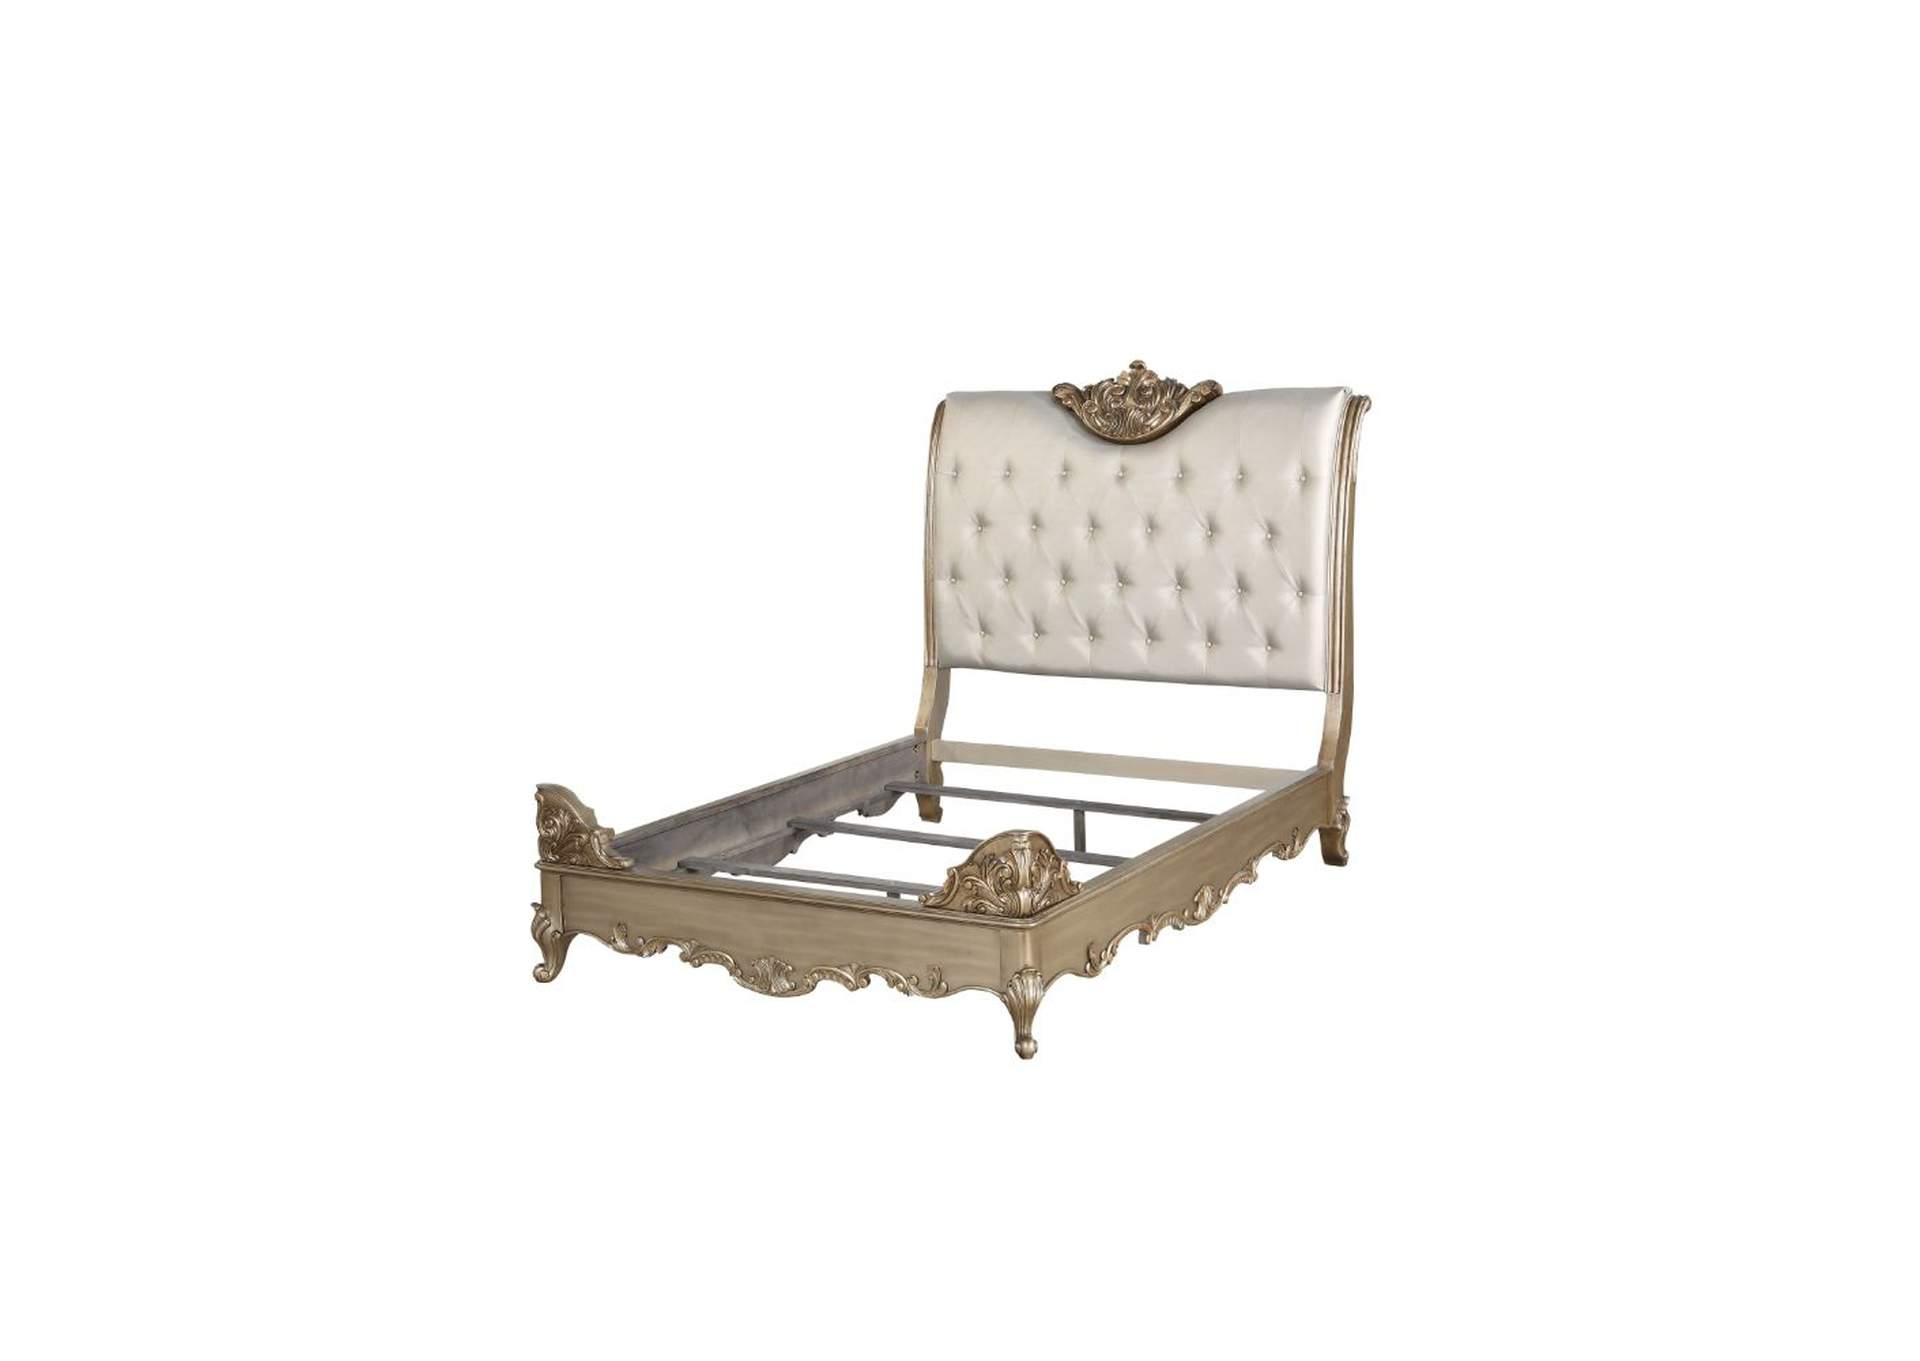 Orianne Champagne/Antique Gold California King Bed,Acme